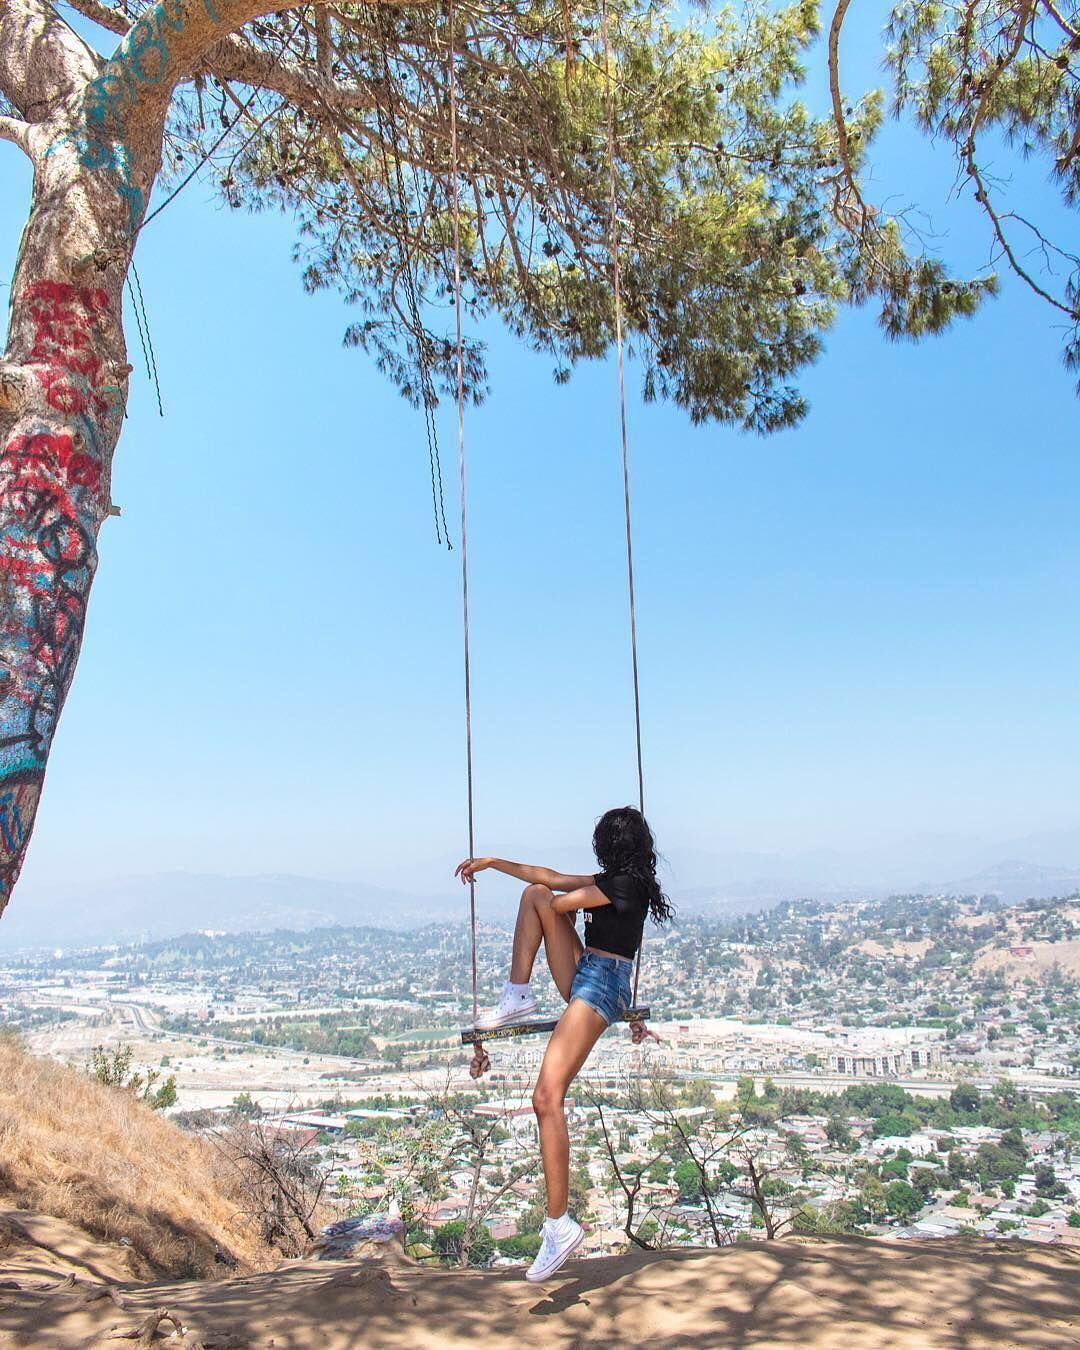 ", LA Bucket List 🌴 on Instagram: ""Tag who you'd swing with? 🌳🏙 One of the coolest views in the whole city – 📸:@theawkwardtraveller"", My Travels Blog 2020, My Travels Blog 2020"